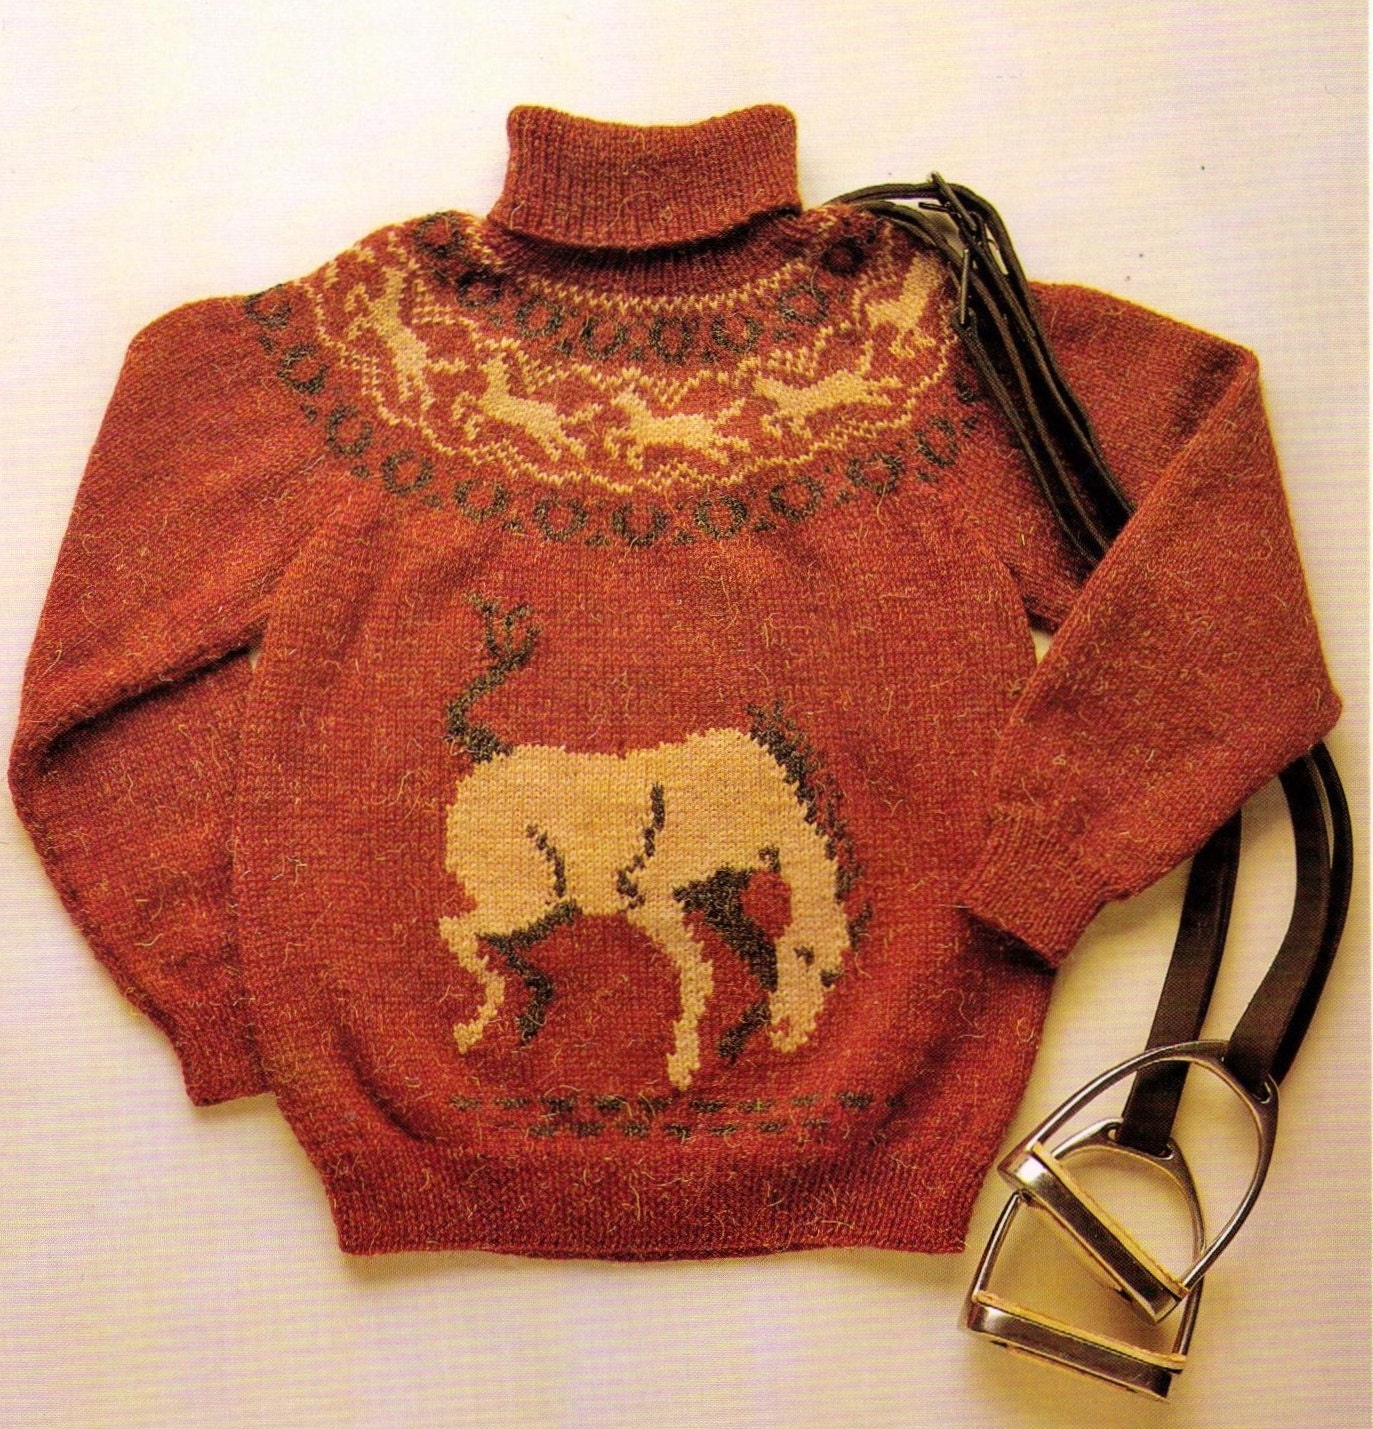 COUNTrY AUSTRALIaNS BRUMBY Horse CHILDrenS JUMPEr